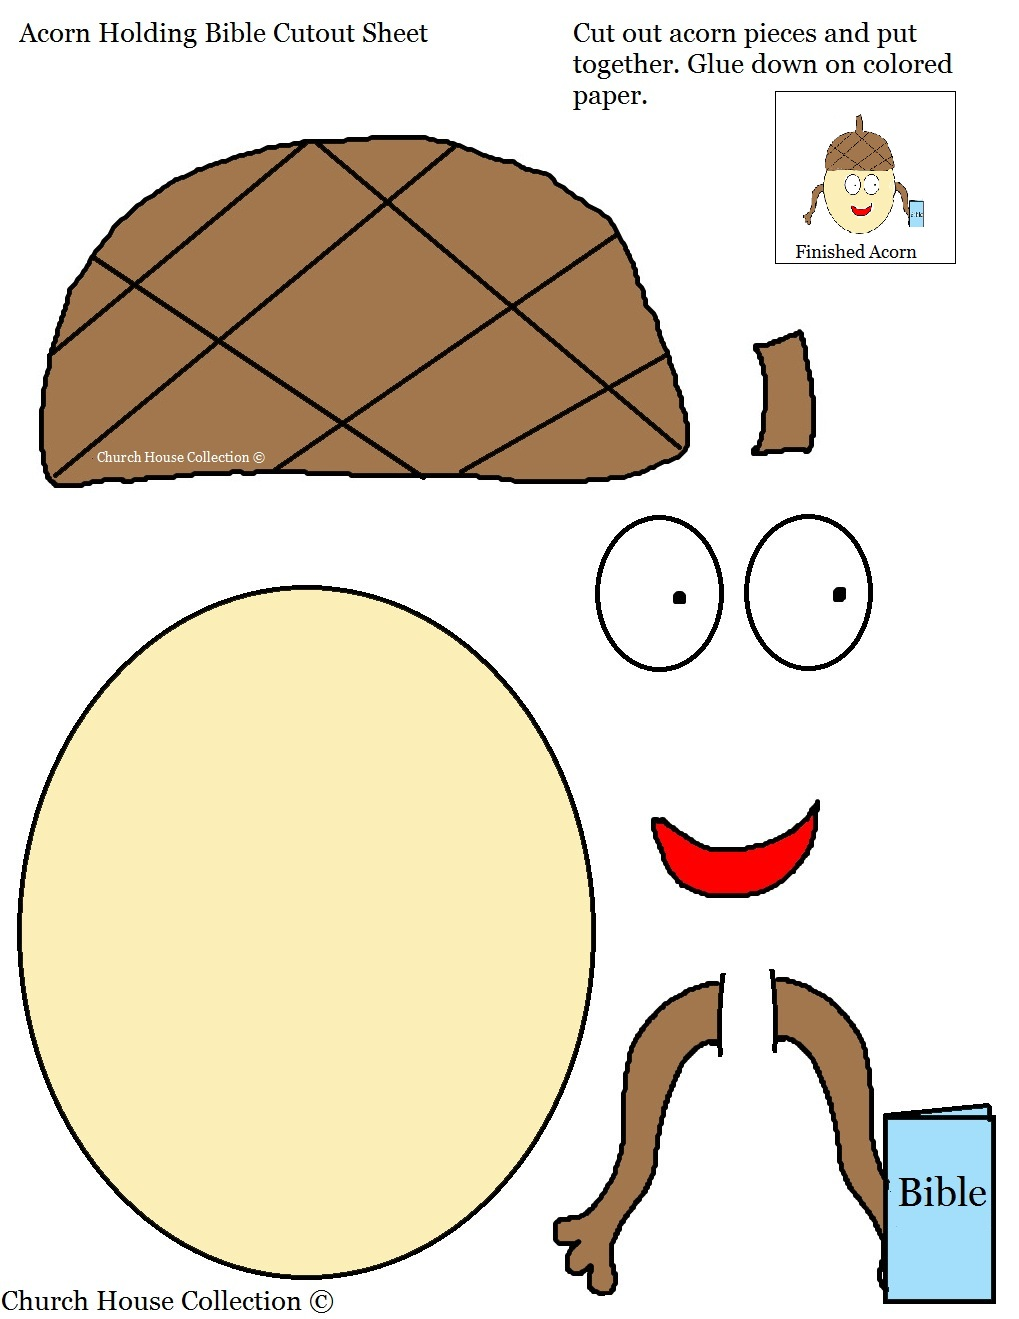 acorn holding bible cutout sheet for kids 2 jpg